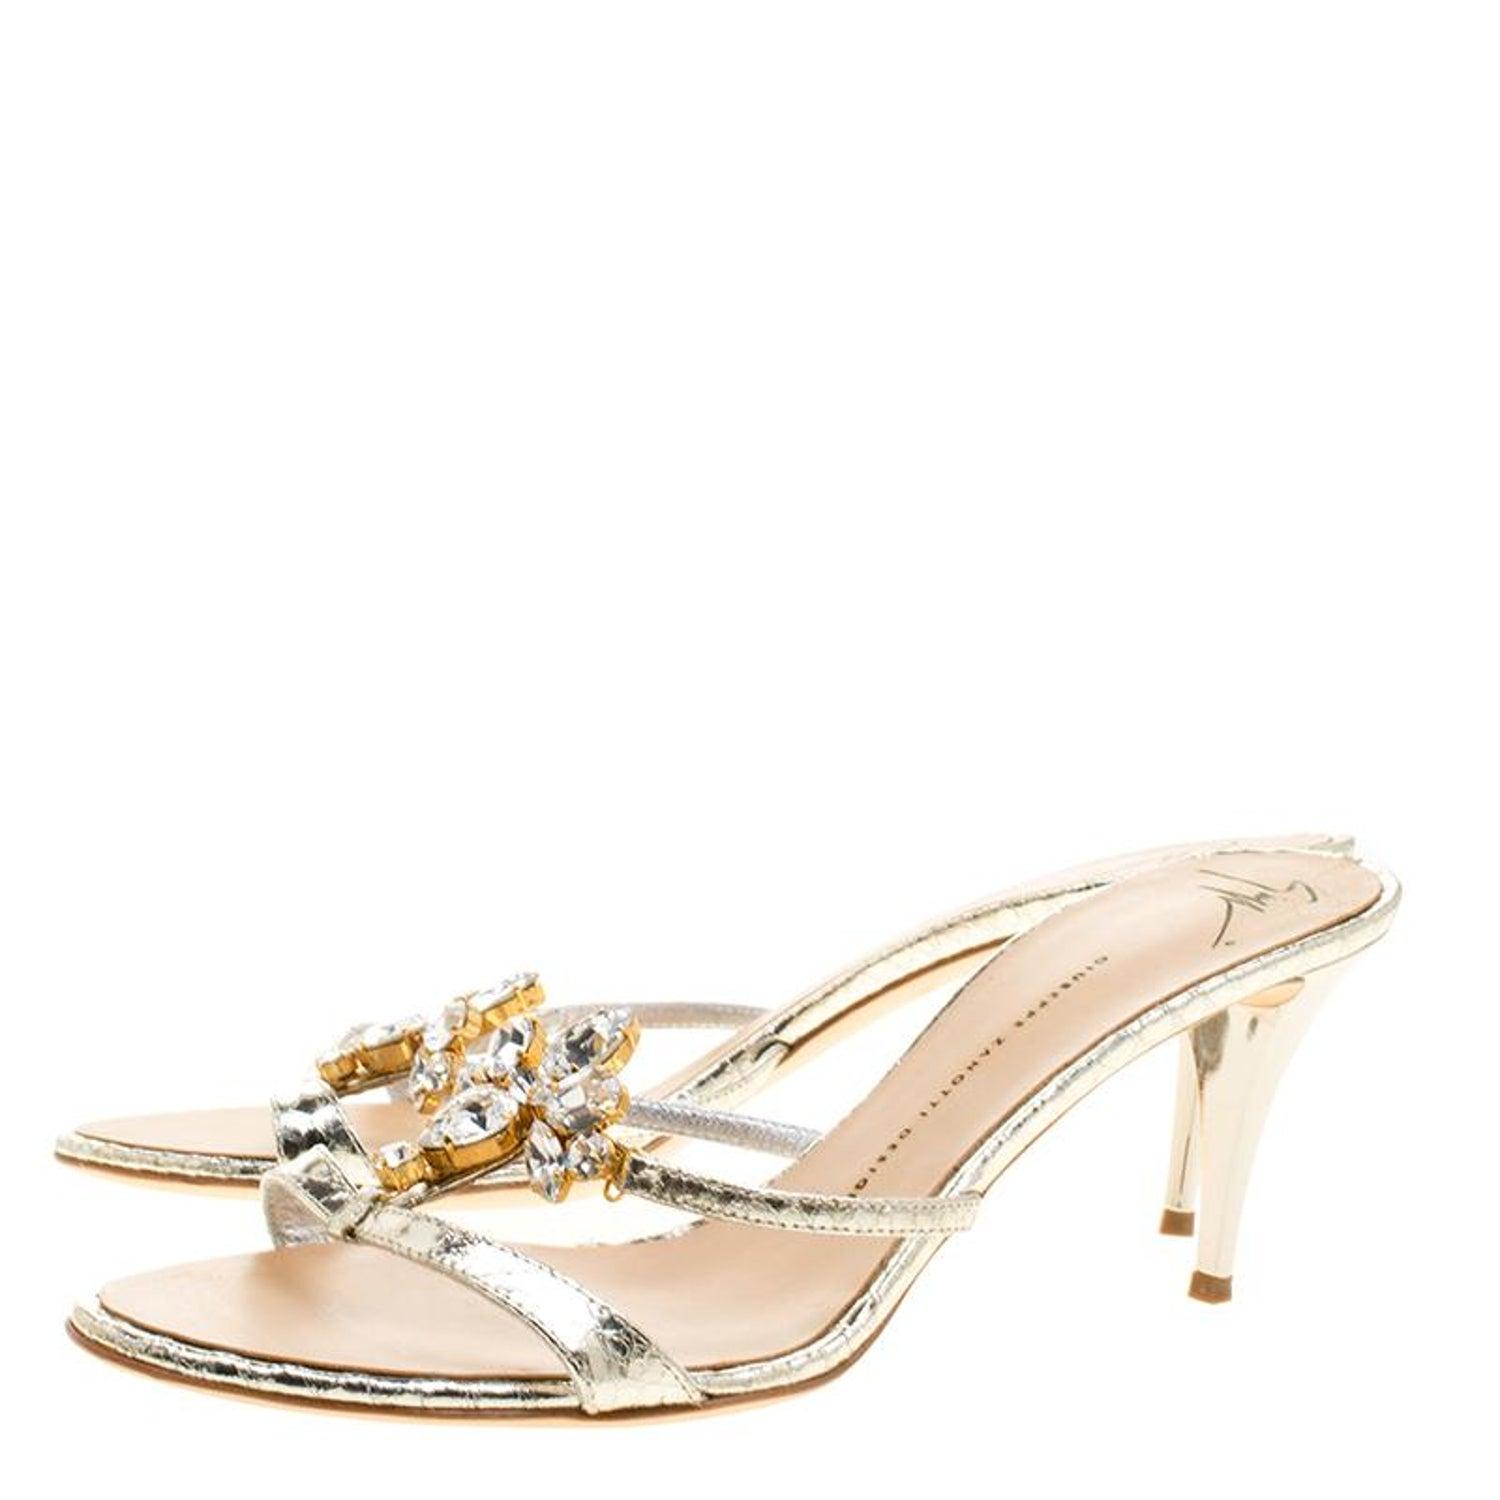 ab2c70c54feab Giuseppe Zanotti Embossed Leather Crystal Embellished Open Toe Slides Size  41 For Sale at 1stdibs